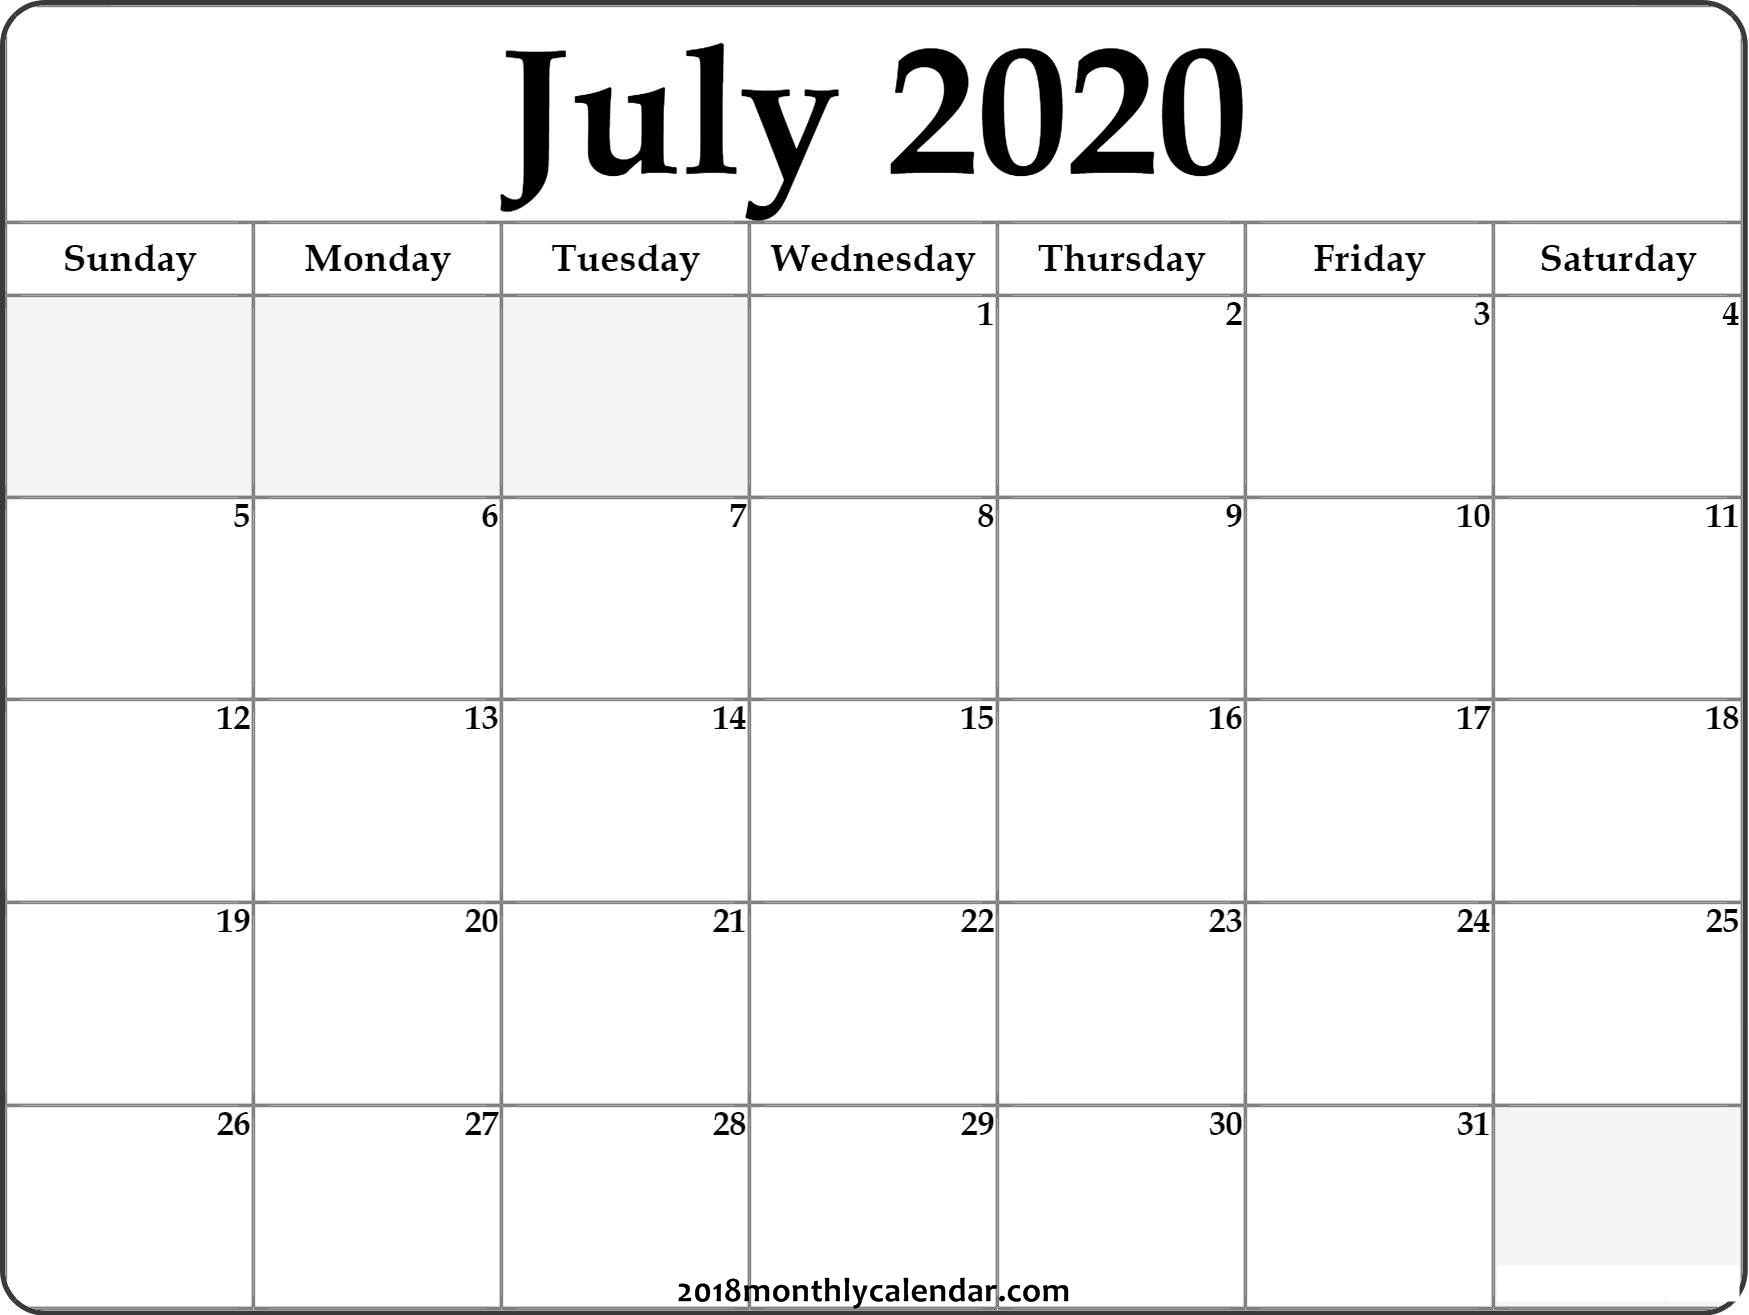 Download July 2020 Printable Calendar pertaining to Printable 2020 Calendar I Can Edit